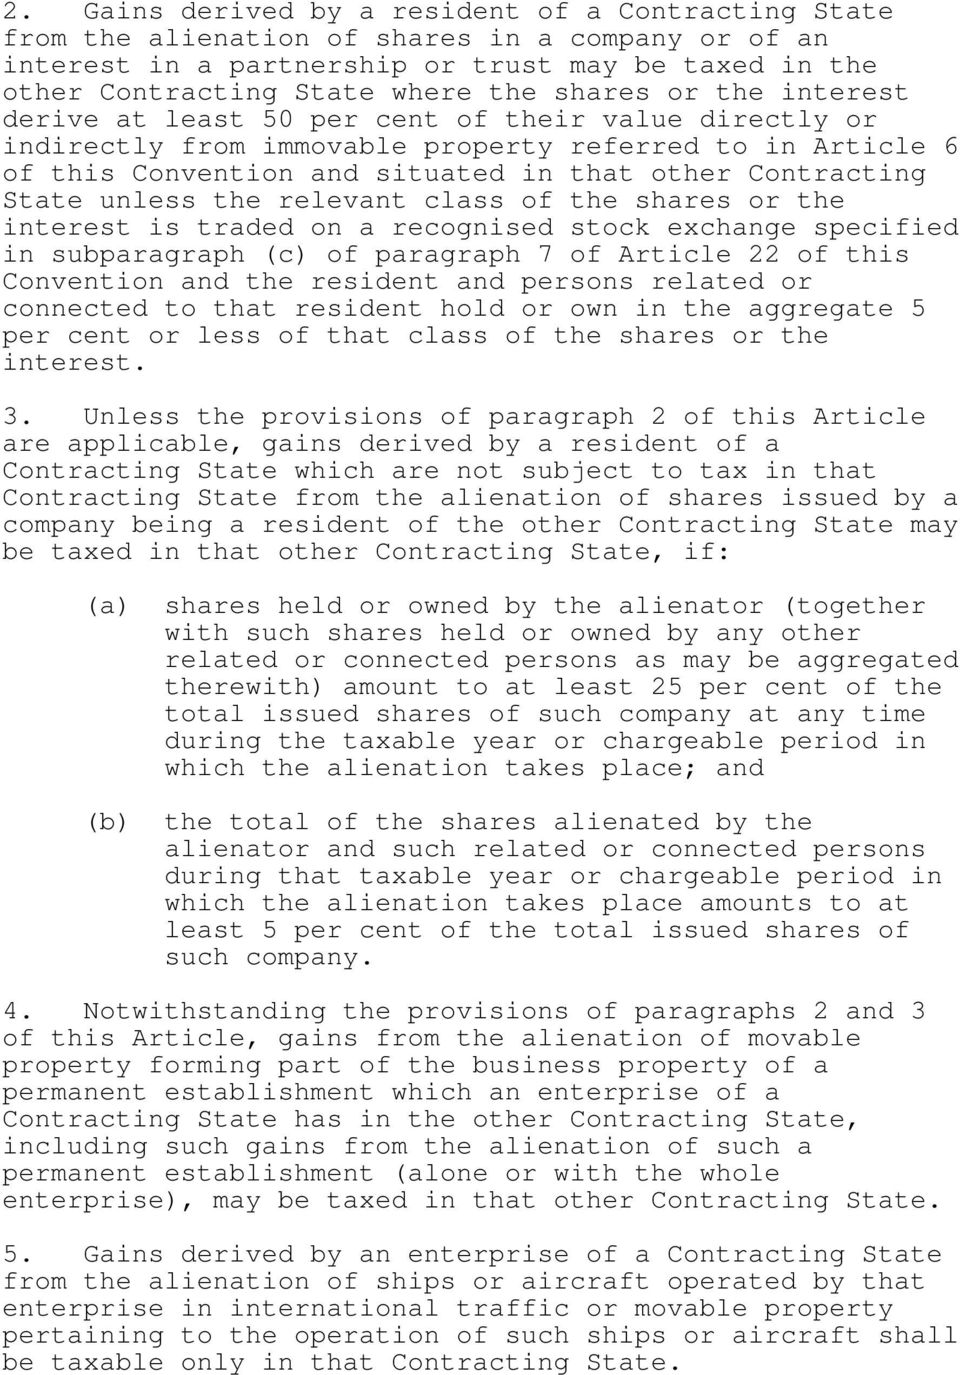 State unless the relevant class of the shares or the interest is traded on a recognised stock exchange specified in subparagraph (c) of paragraph 7 of Article 22 of this Convention and the resident